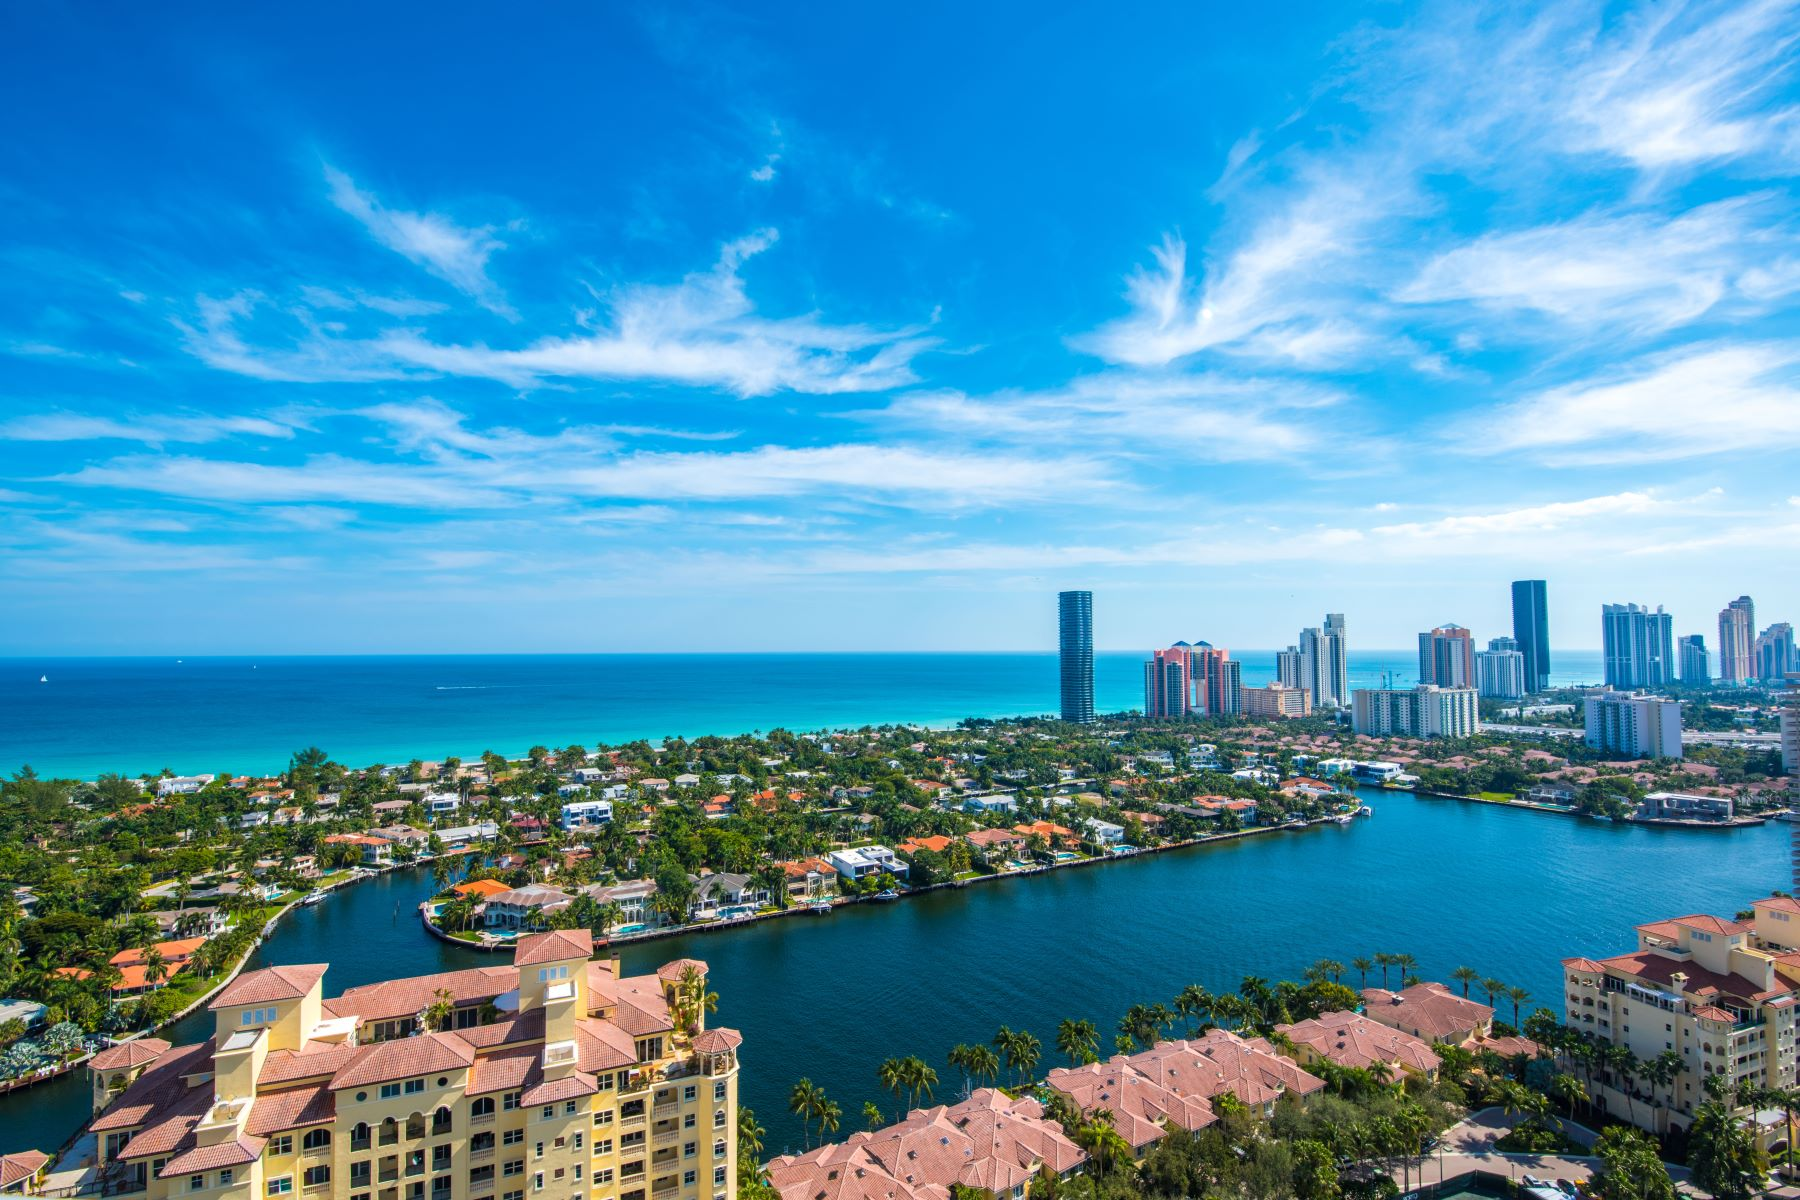 Condominium for Sale at 20155 Ne 38th Ct 20155Ne 38th Ct TS-03 Aventura, Florida 33180 United States